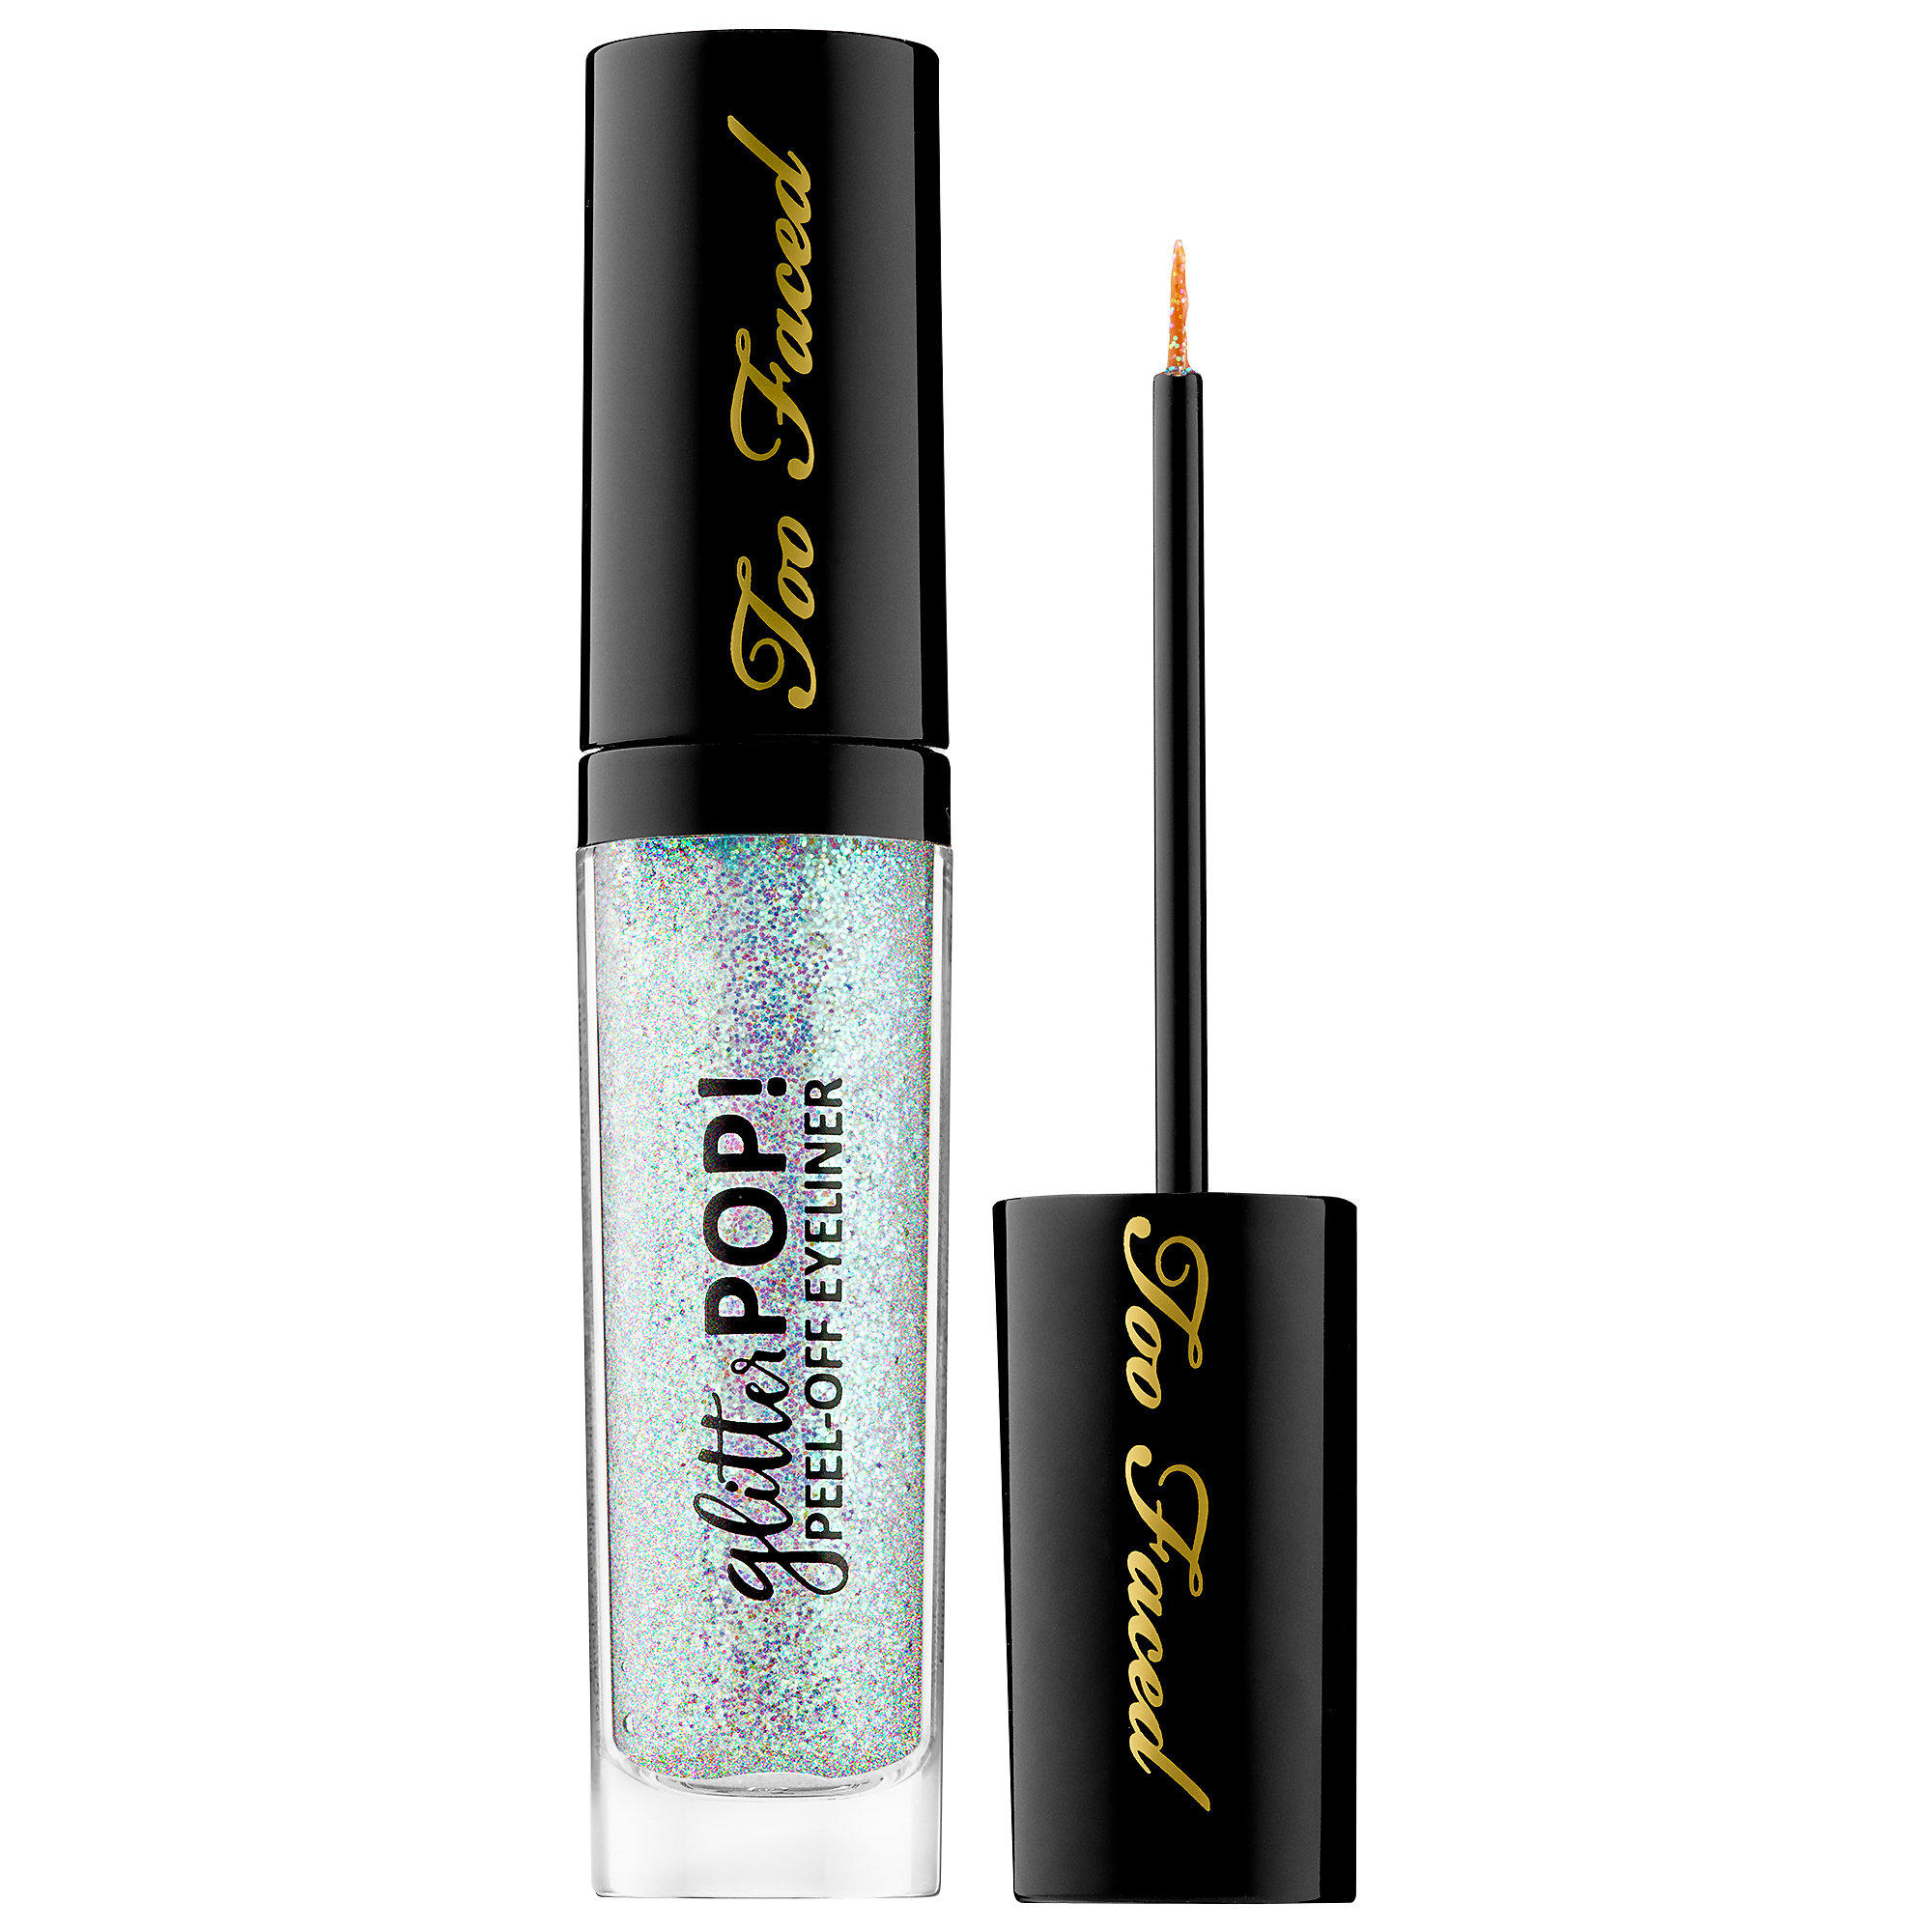 Too Faced Glitter POP! Peel-Off Eyeliner Glitter Ghost